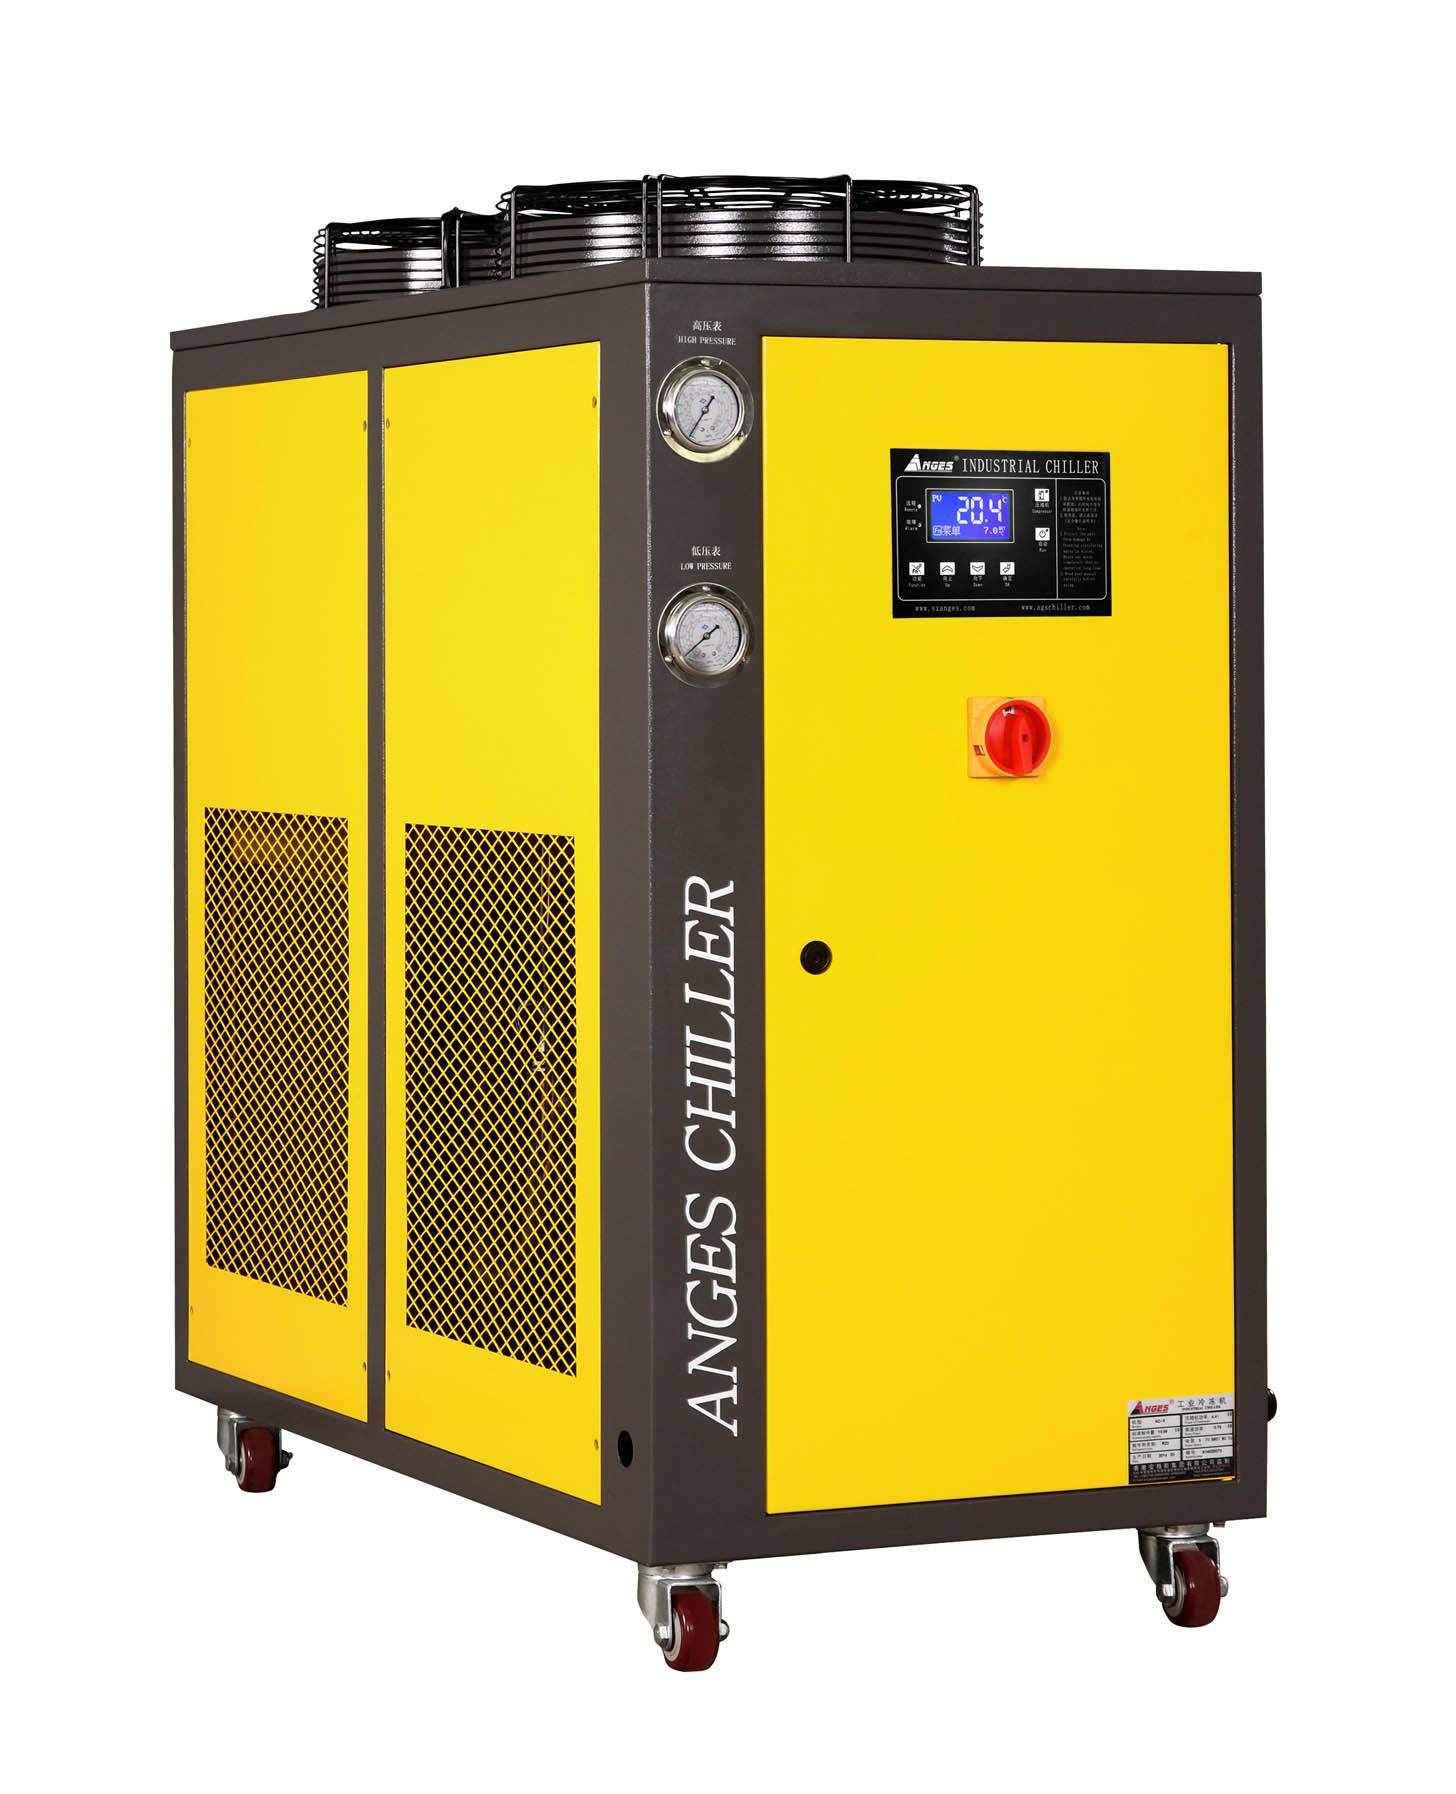 AC-H Heat and cold chiller